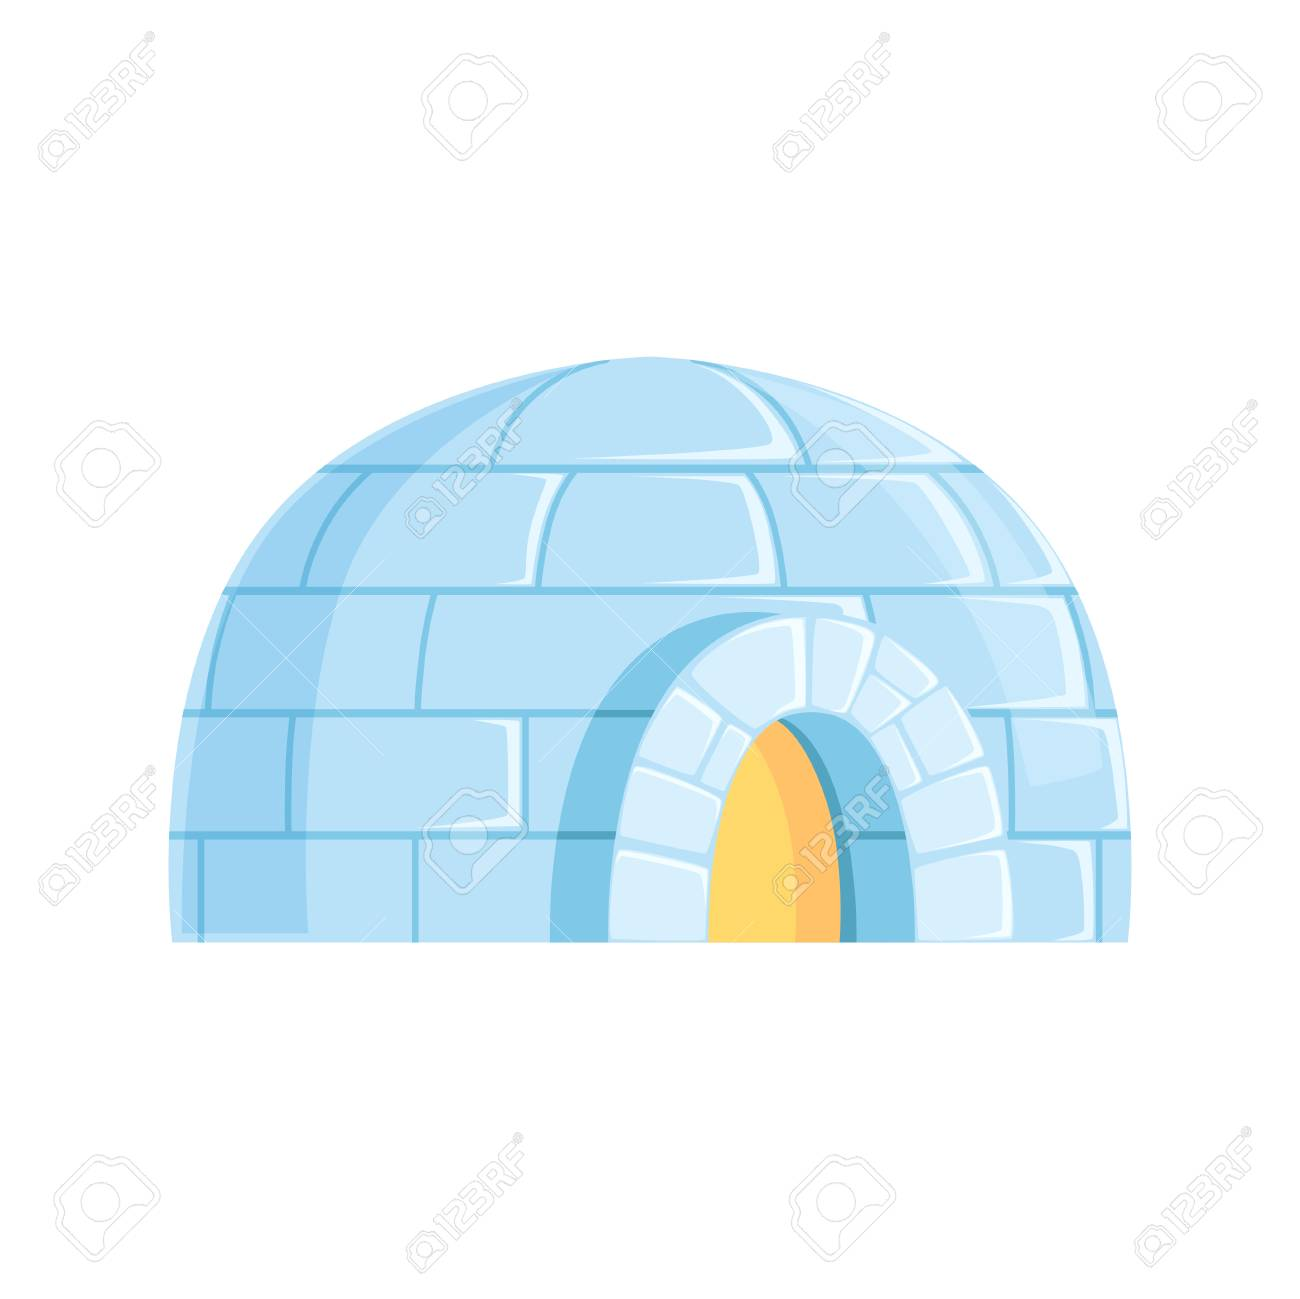 Igloo icy cold house winter built from ice blocks vector igloo icy cold house winter built from ice blocks vector illustration stock vector pooptronica